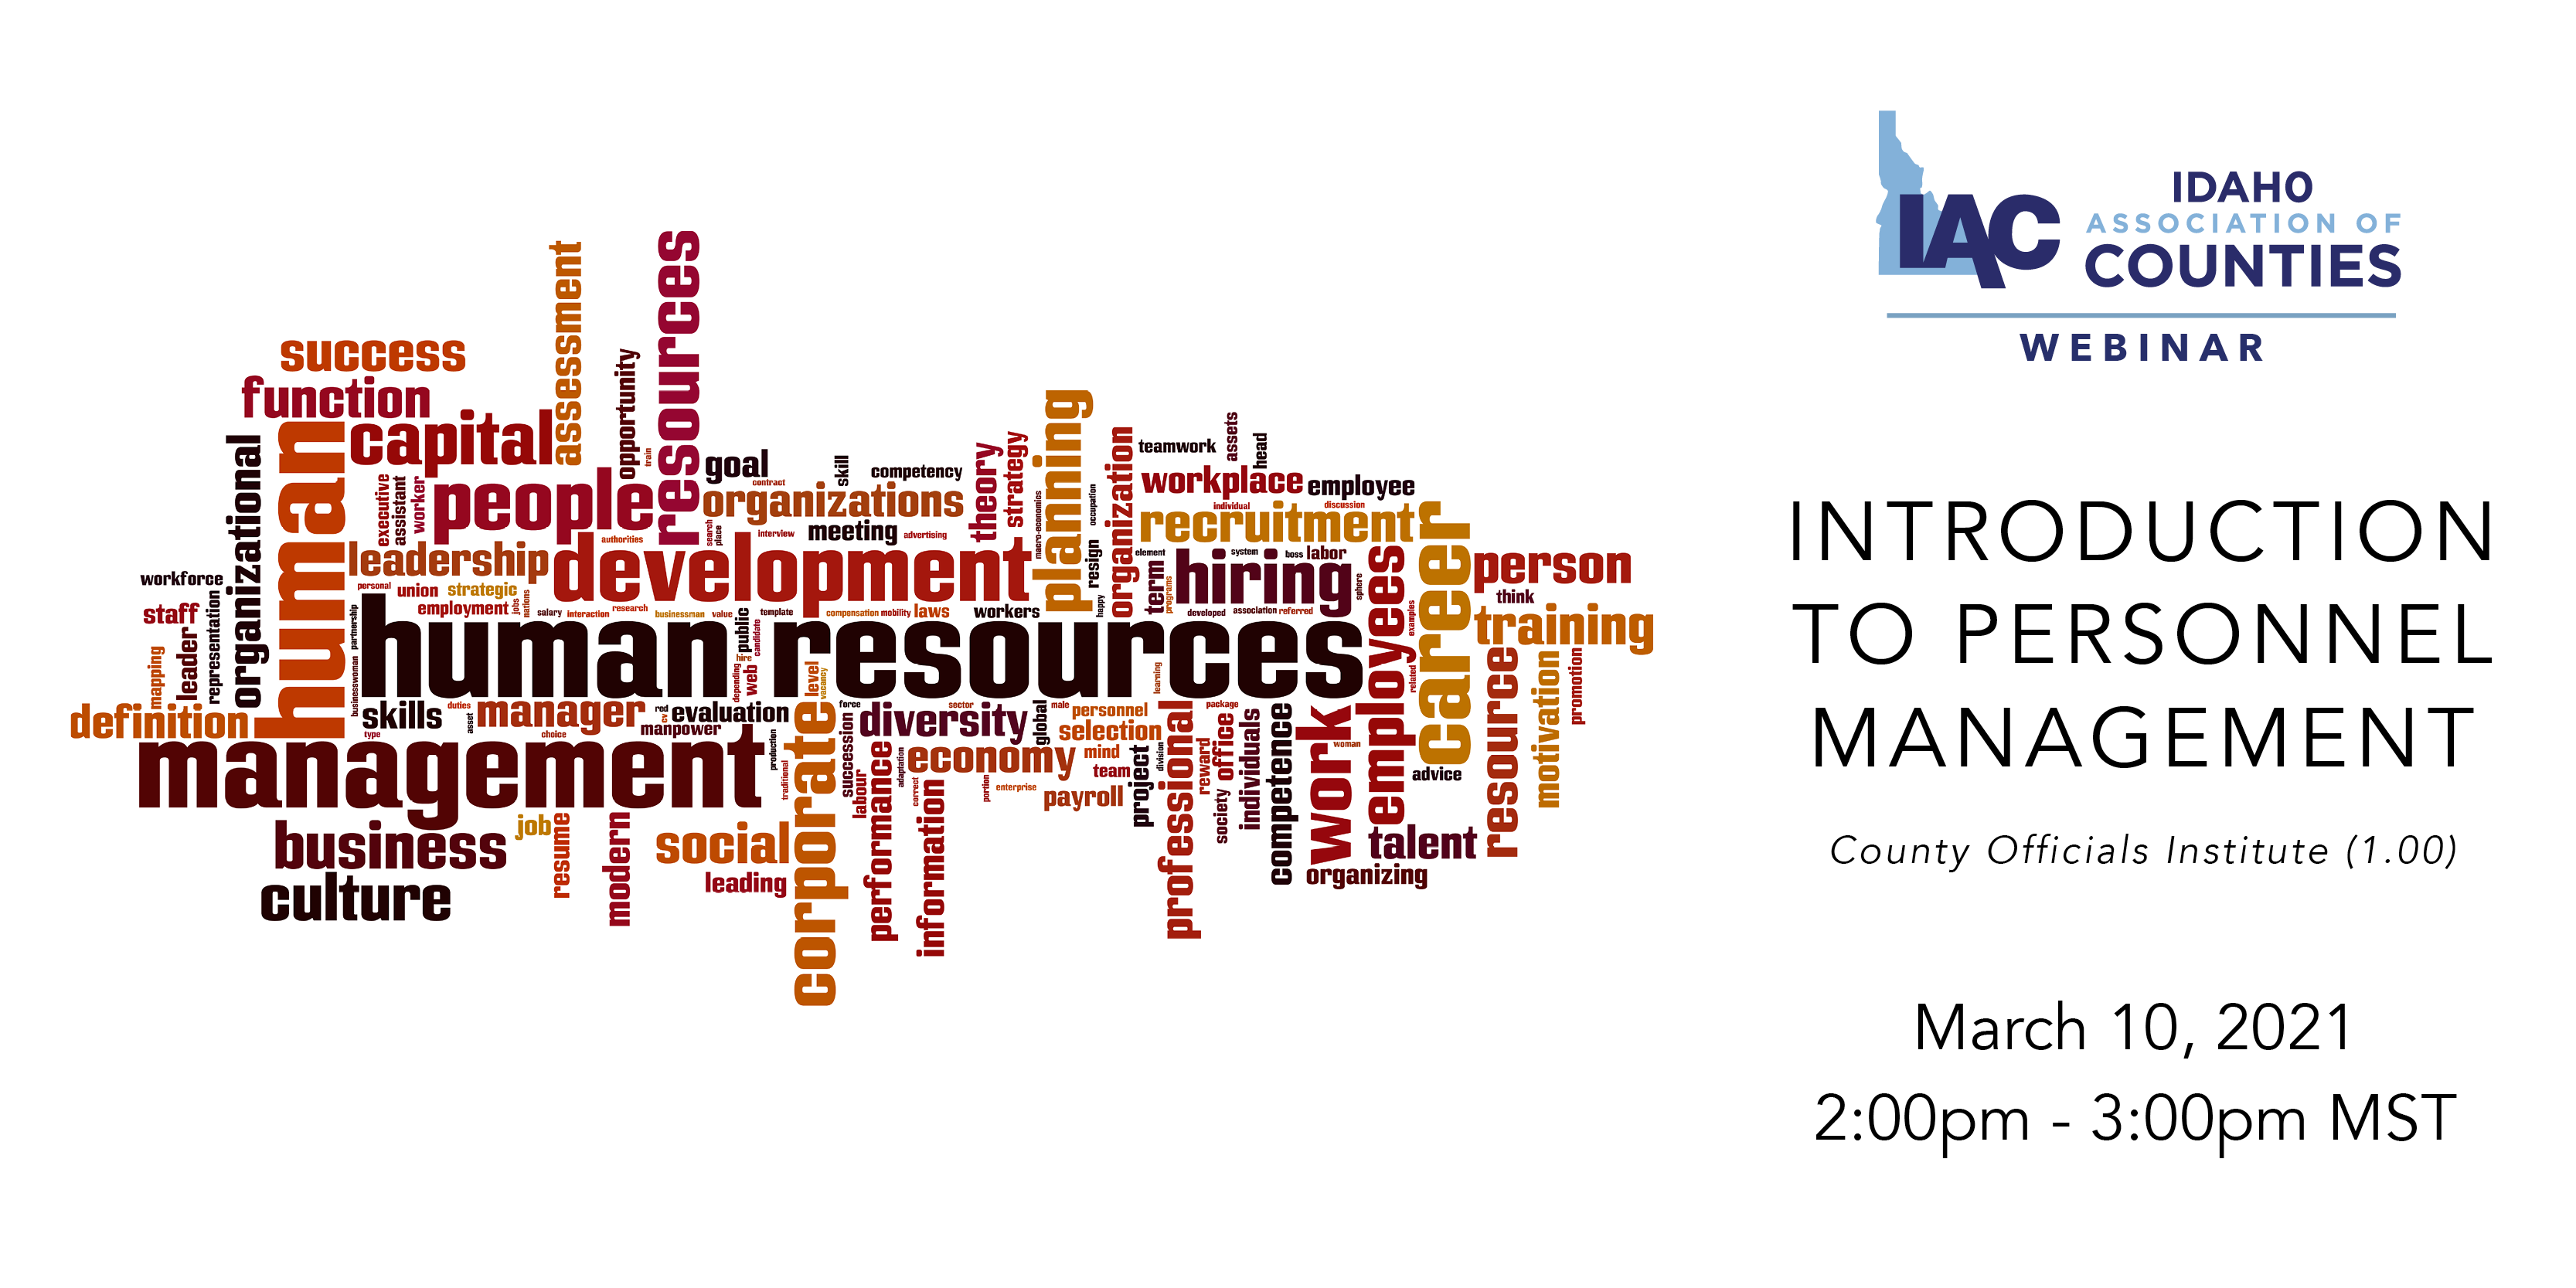 IAC Webinar: Introduction to Personnel Management